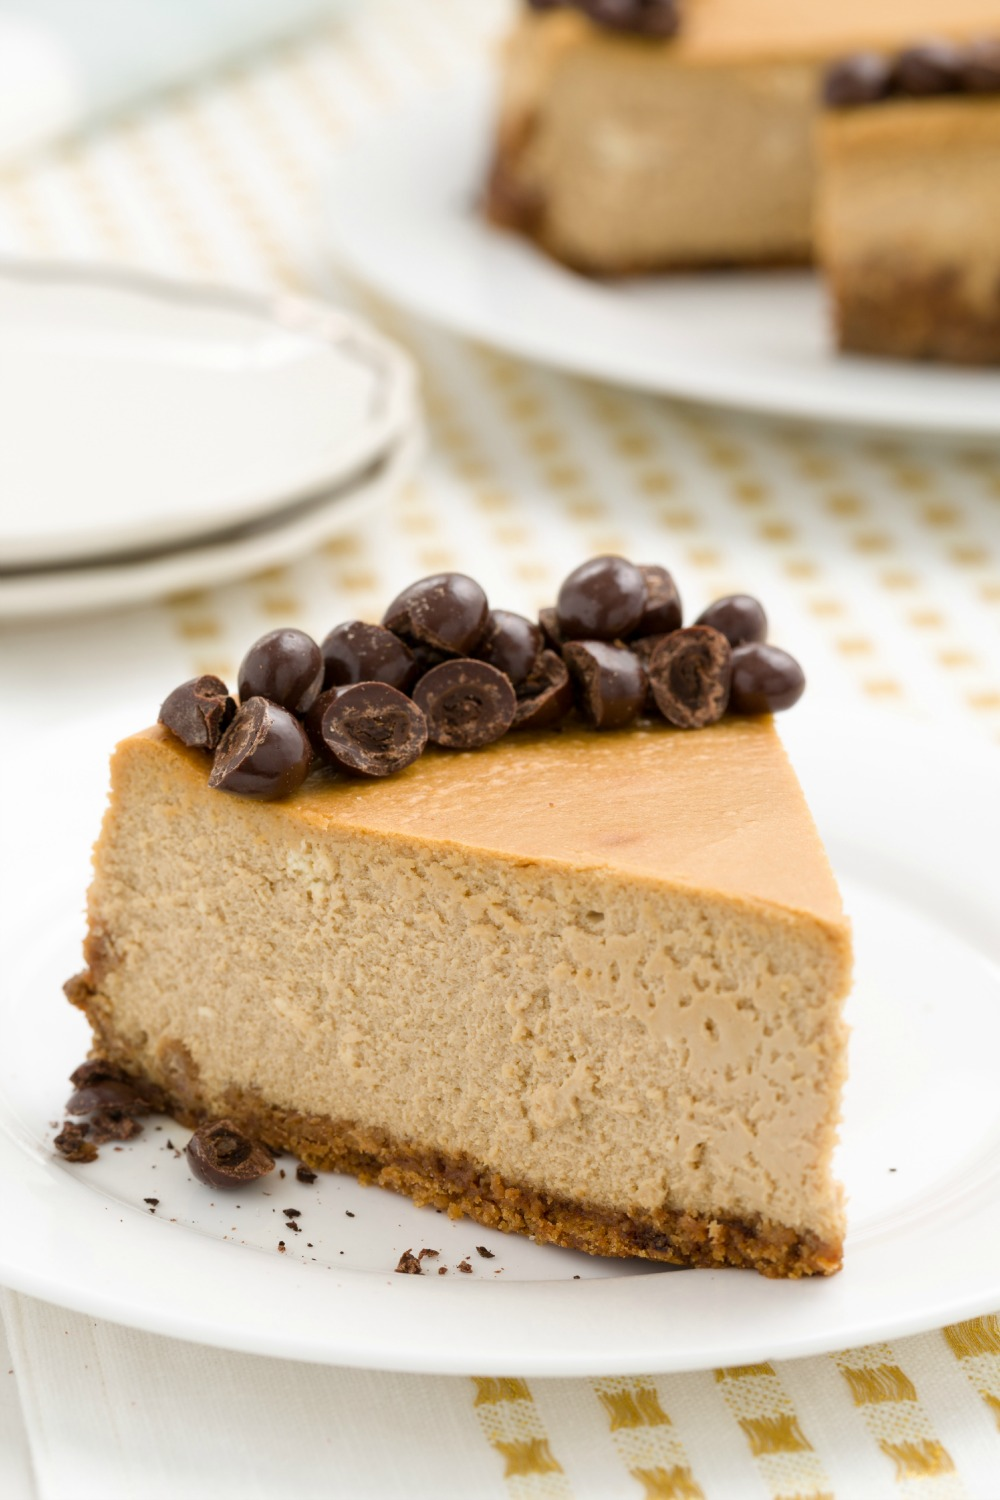 Best Cappuccino Cheesecake Recipe How To Make Cappuccino Cheesecake Delish Com